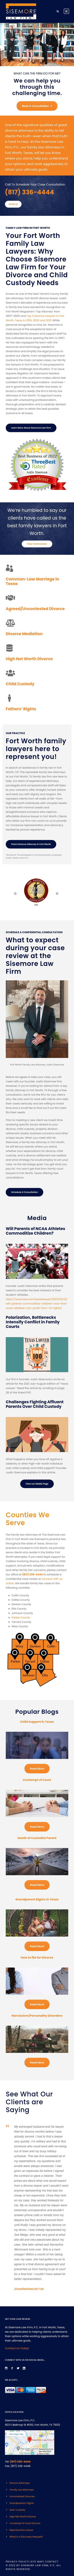 Sisemore Law Firm - Fort Worth TX Lawyers